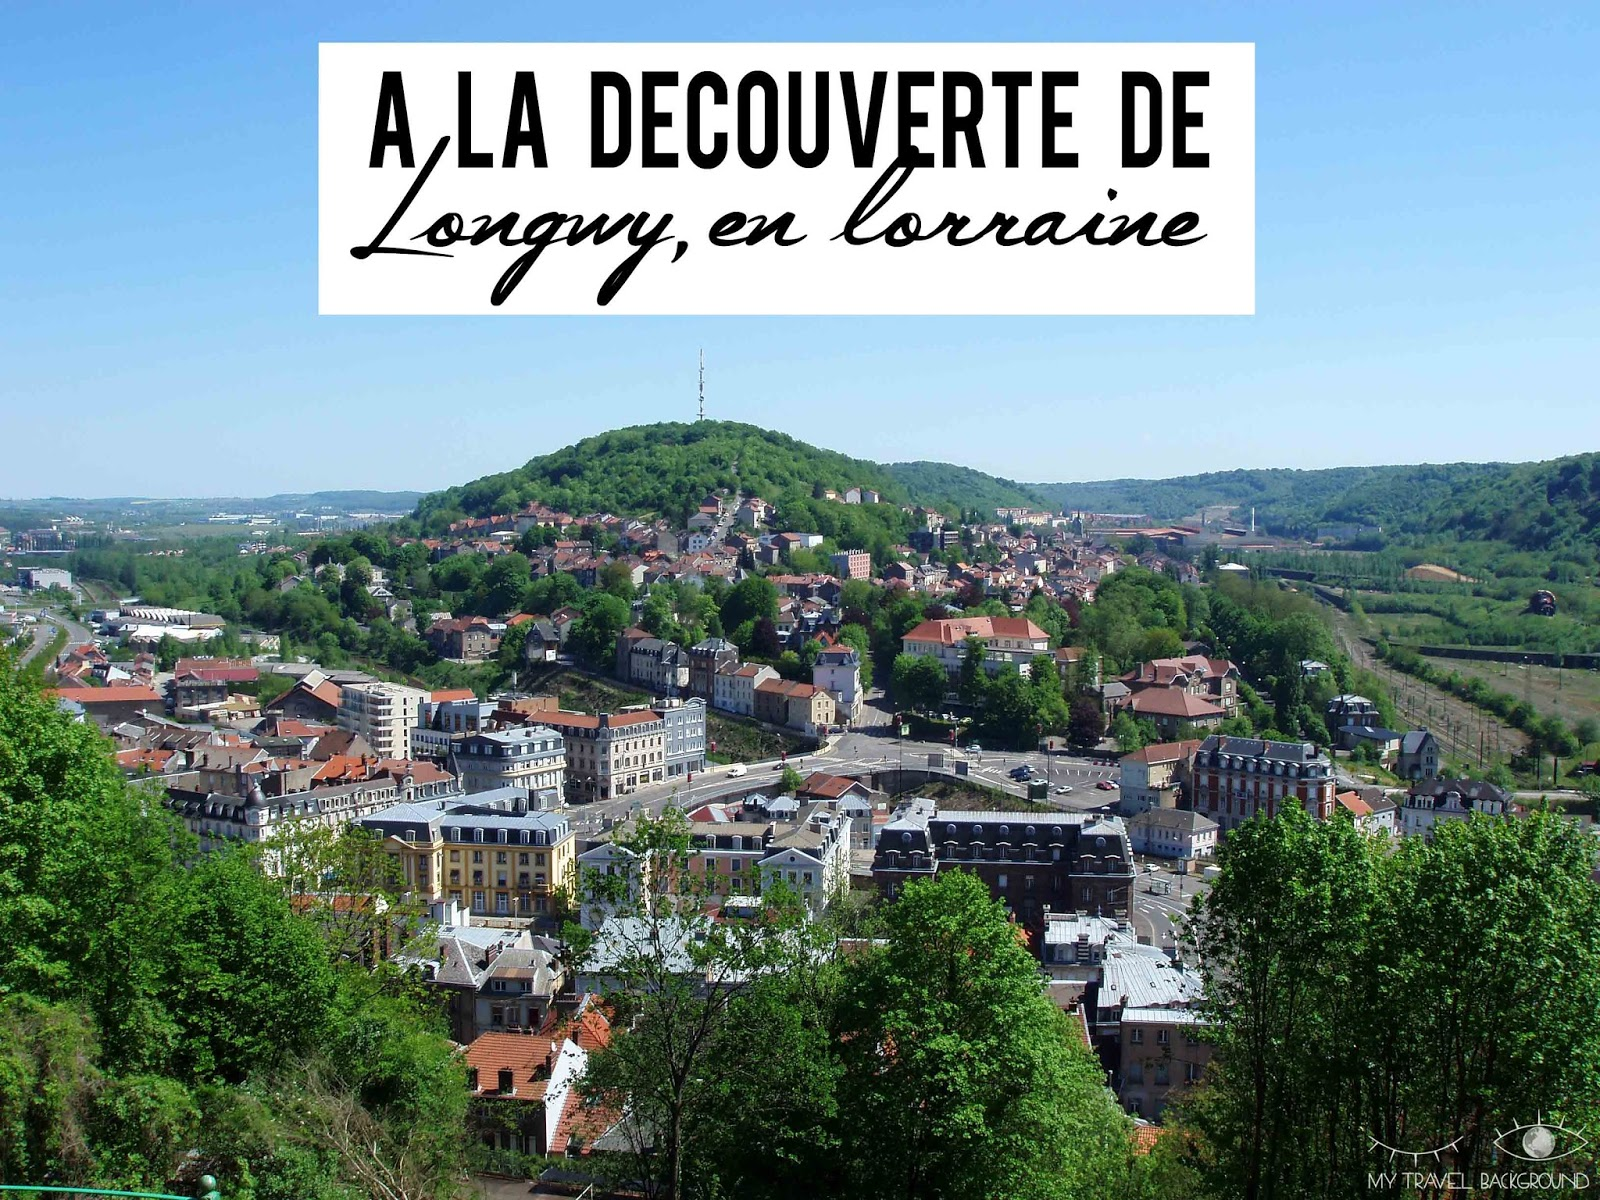 My Travel Background : A la découverte de Longwy, ville-étape du Tour de France 2017